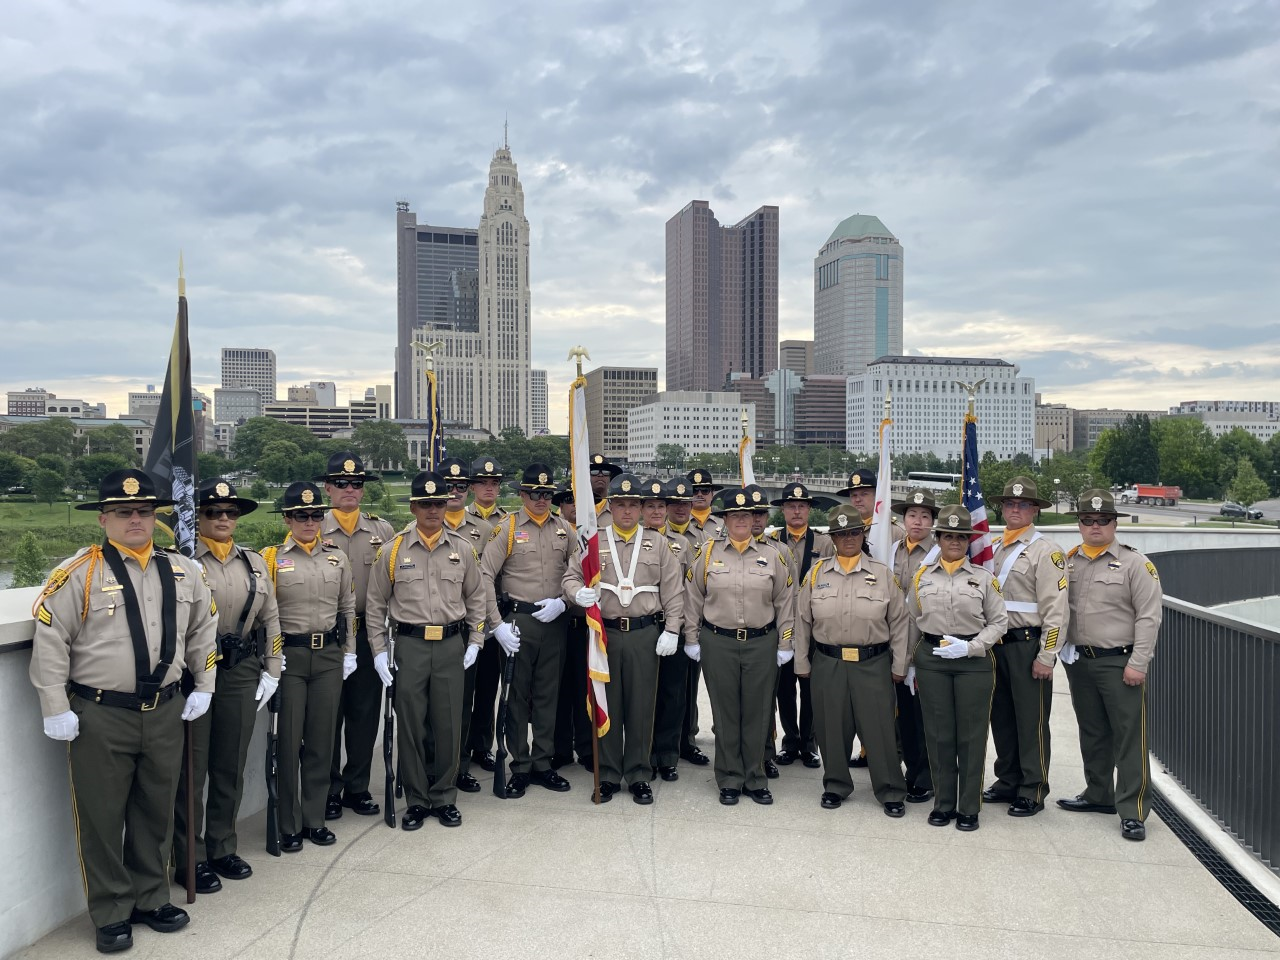 Honor Guard with city skyline in background.